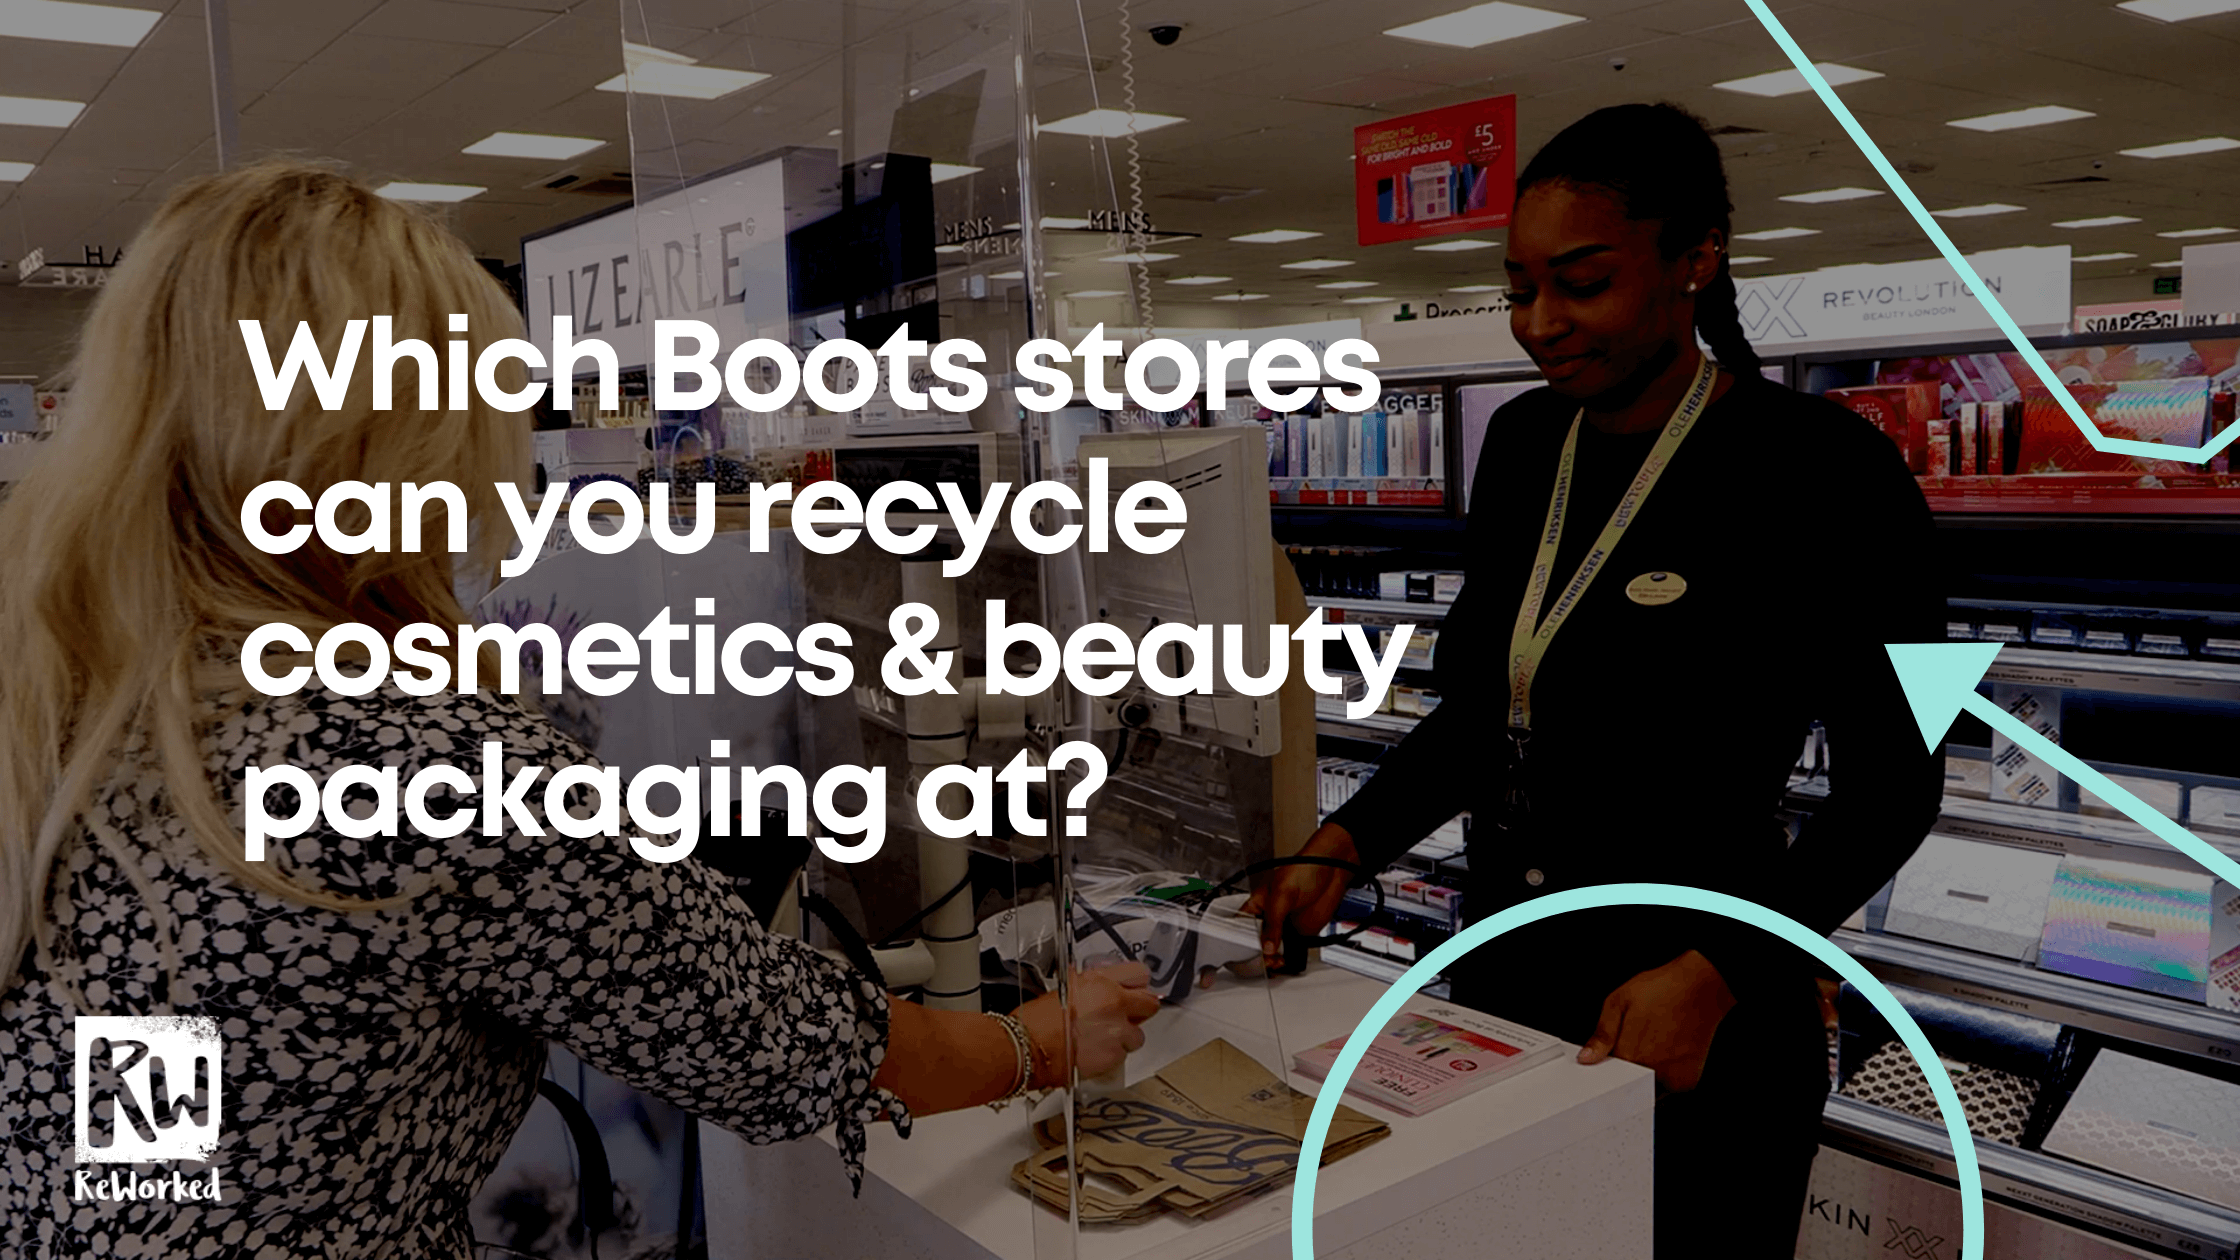 Which Boots stores can you recycle cosmetics & beauty packaging at?